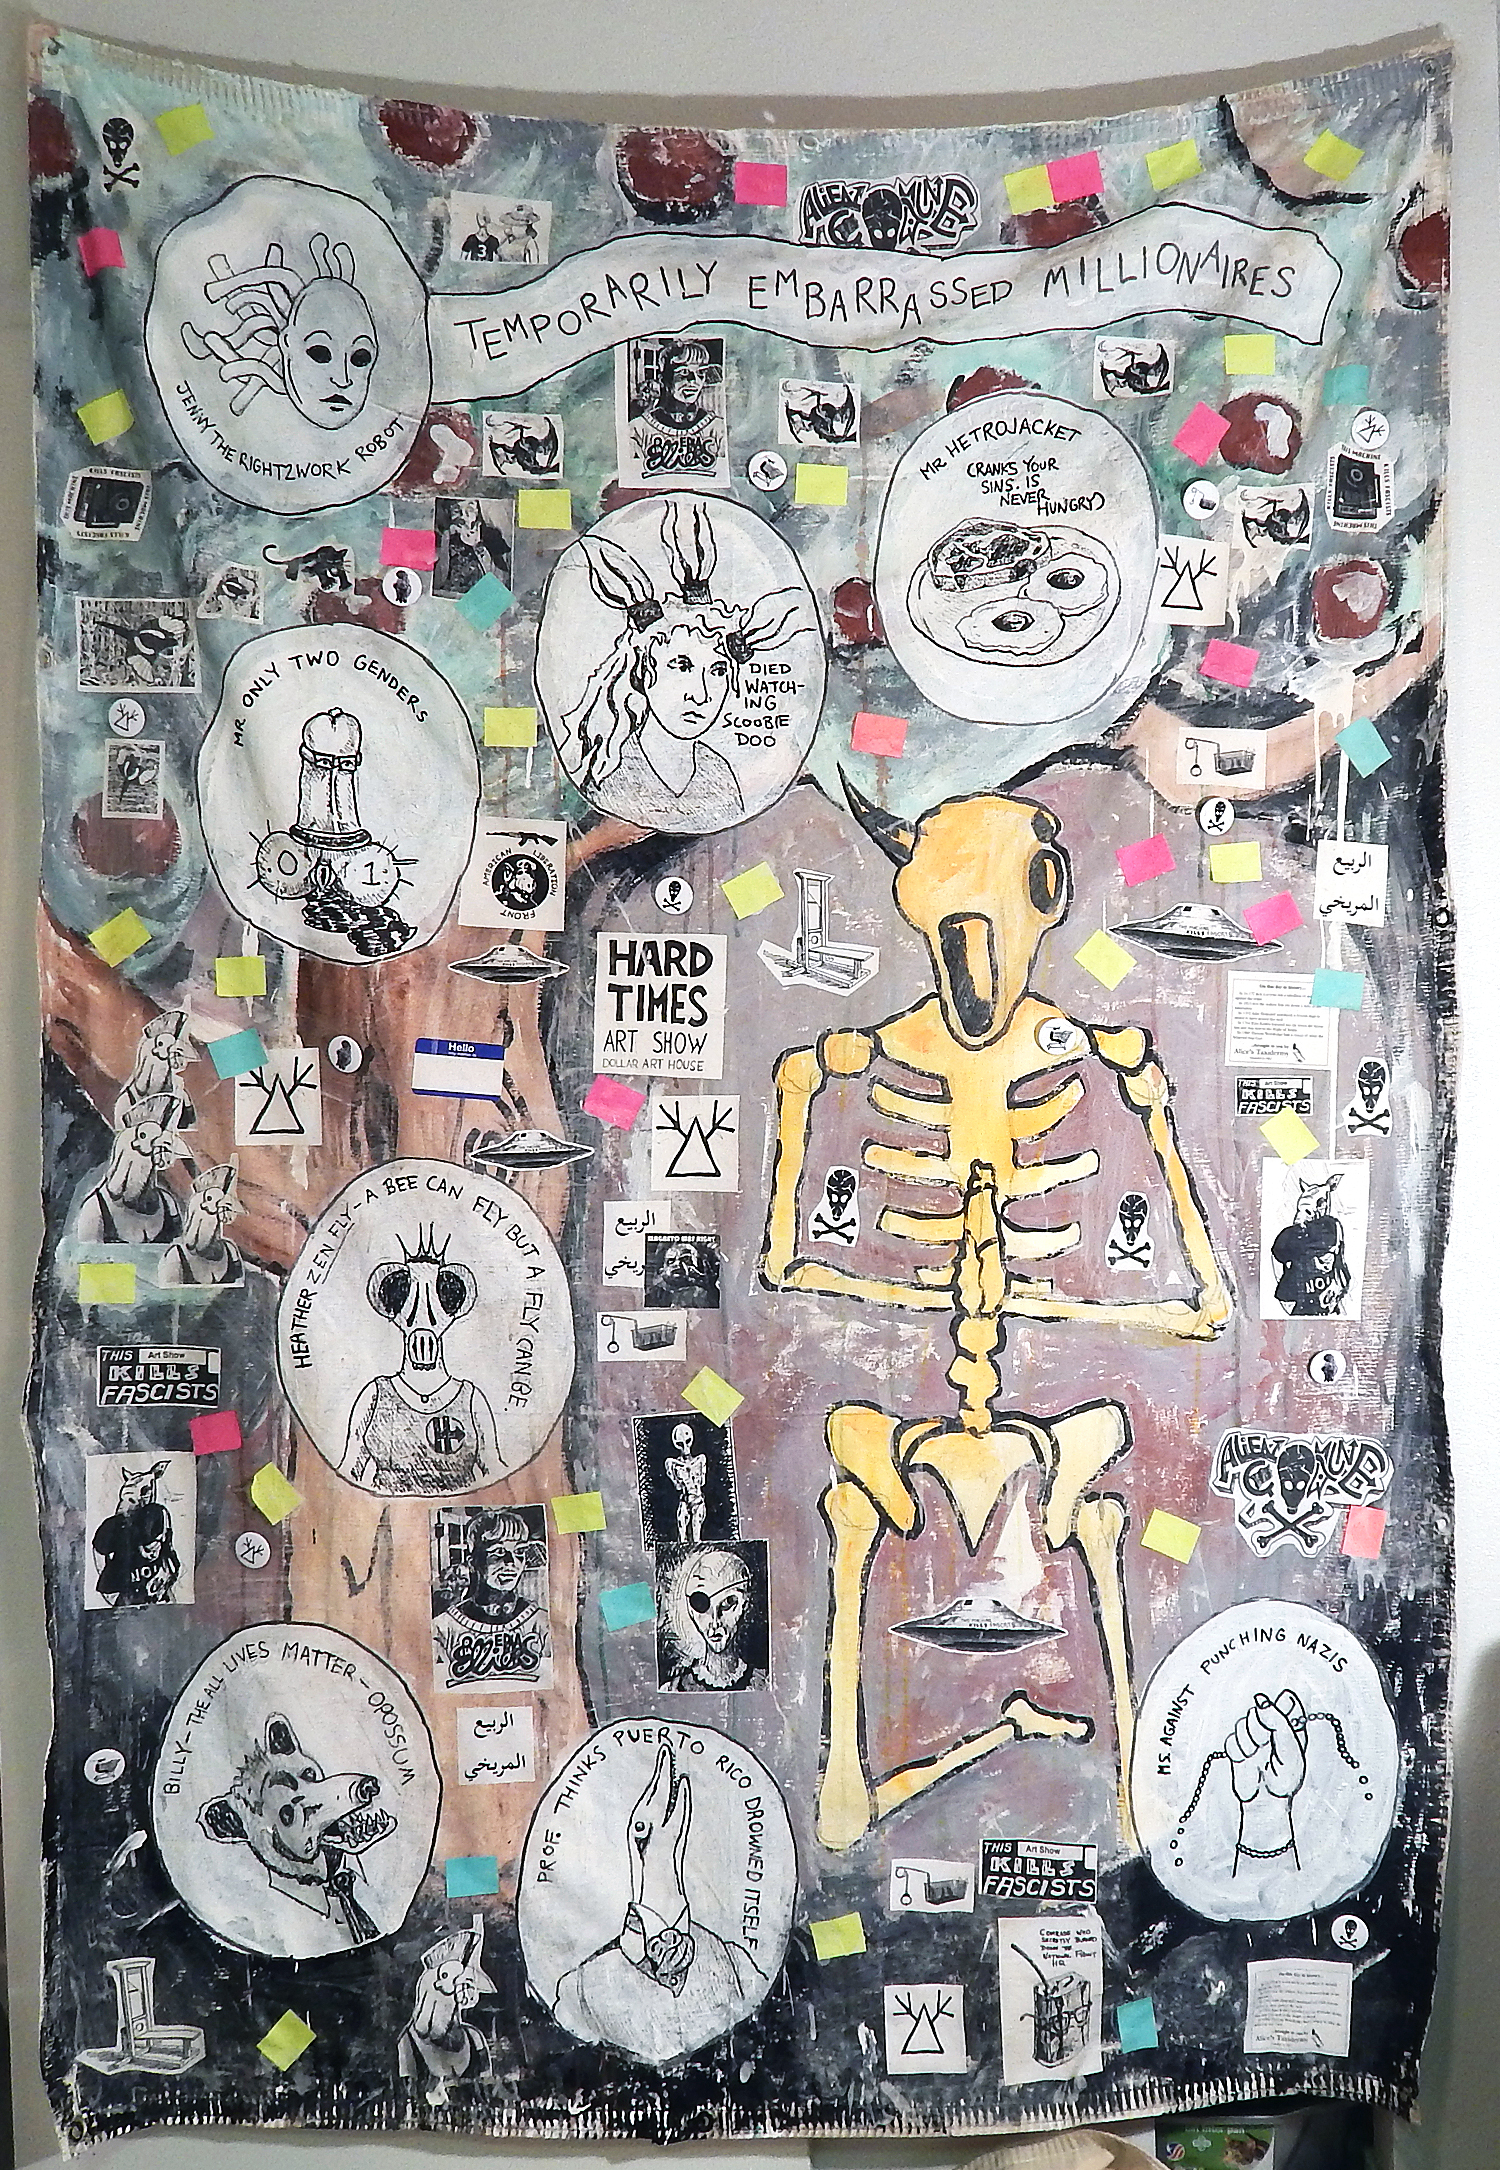 Temporarily Embarrassed Millionaires (Revolt of the Swivel Chairs)    Acrylic, stickers, marker, photocopies, post-it notes, buttons, coffee and mixed media on canvas tarp (2017)